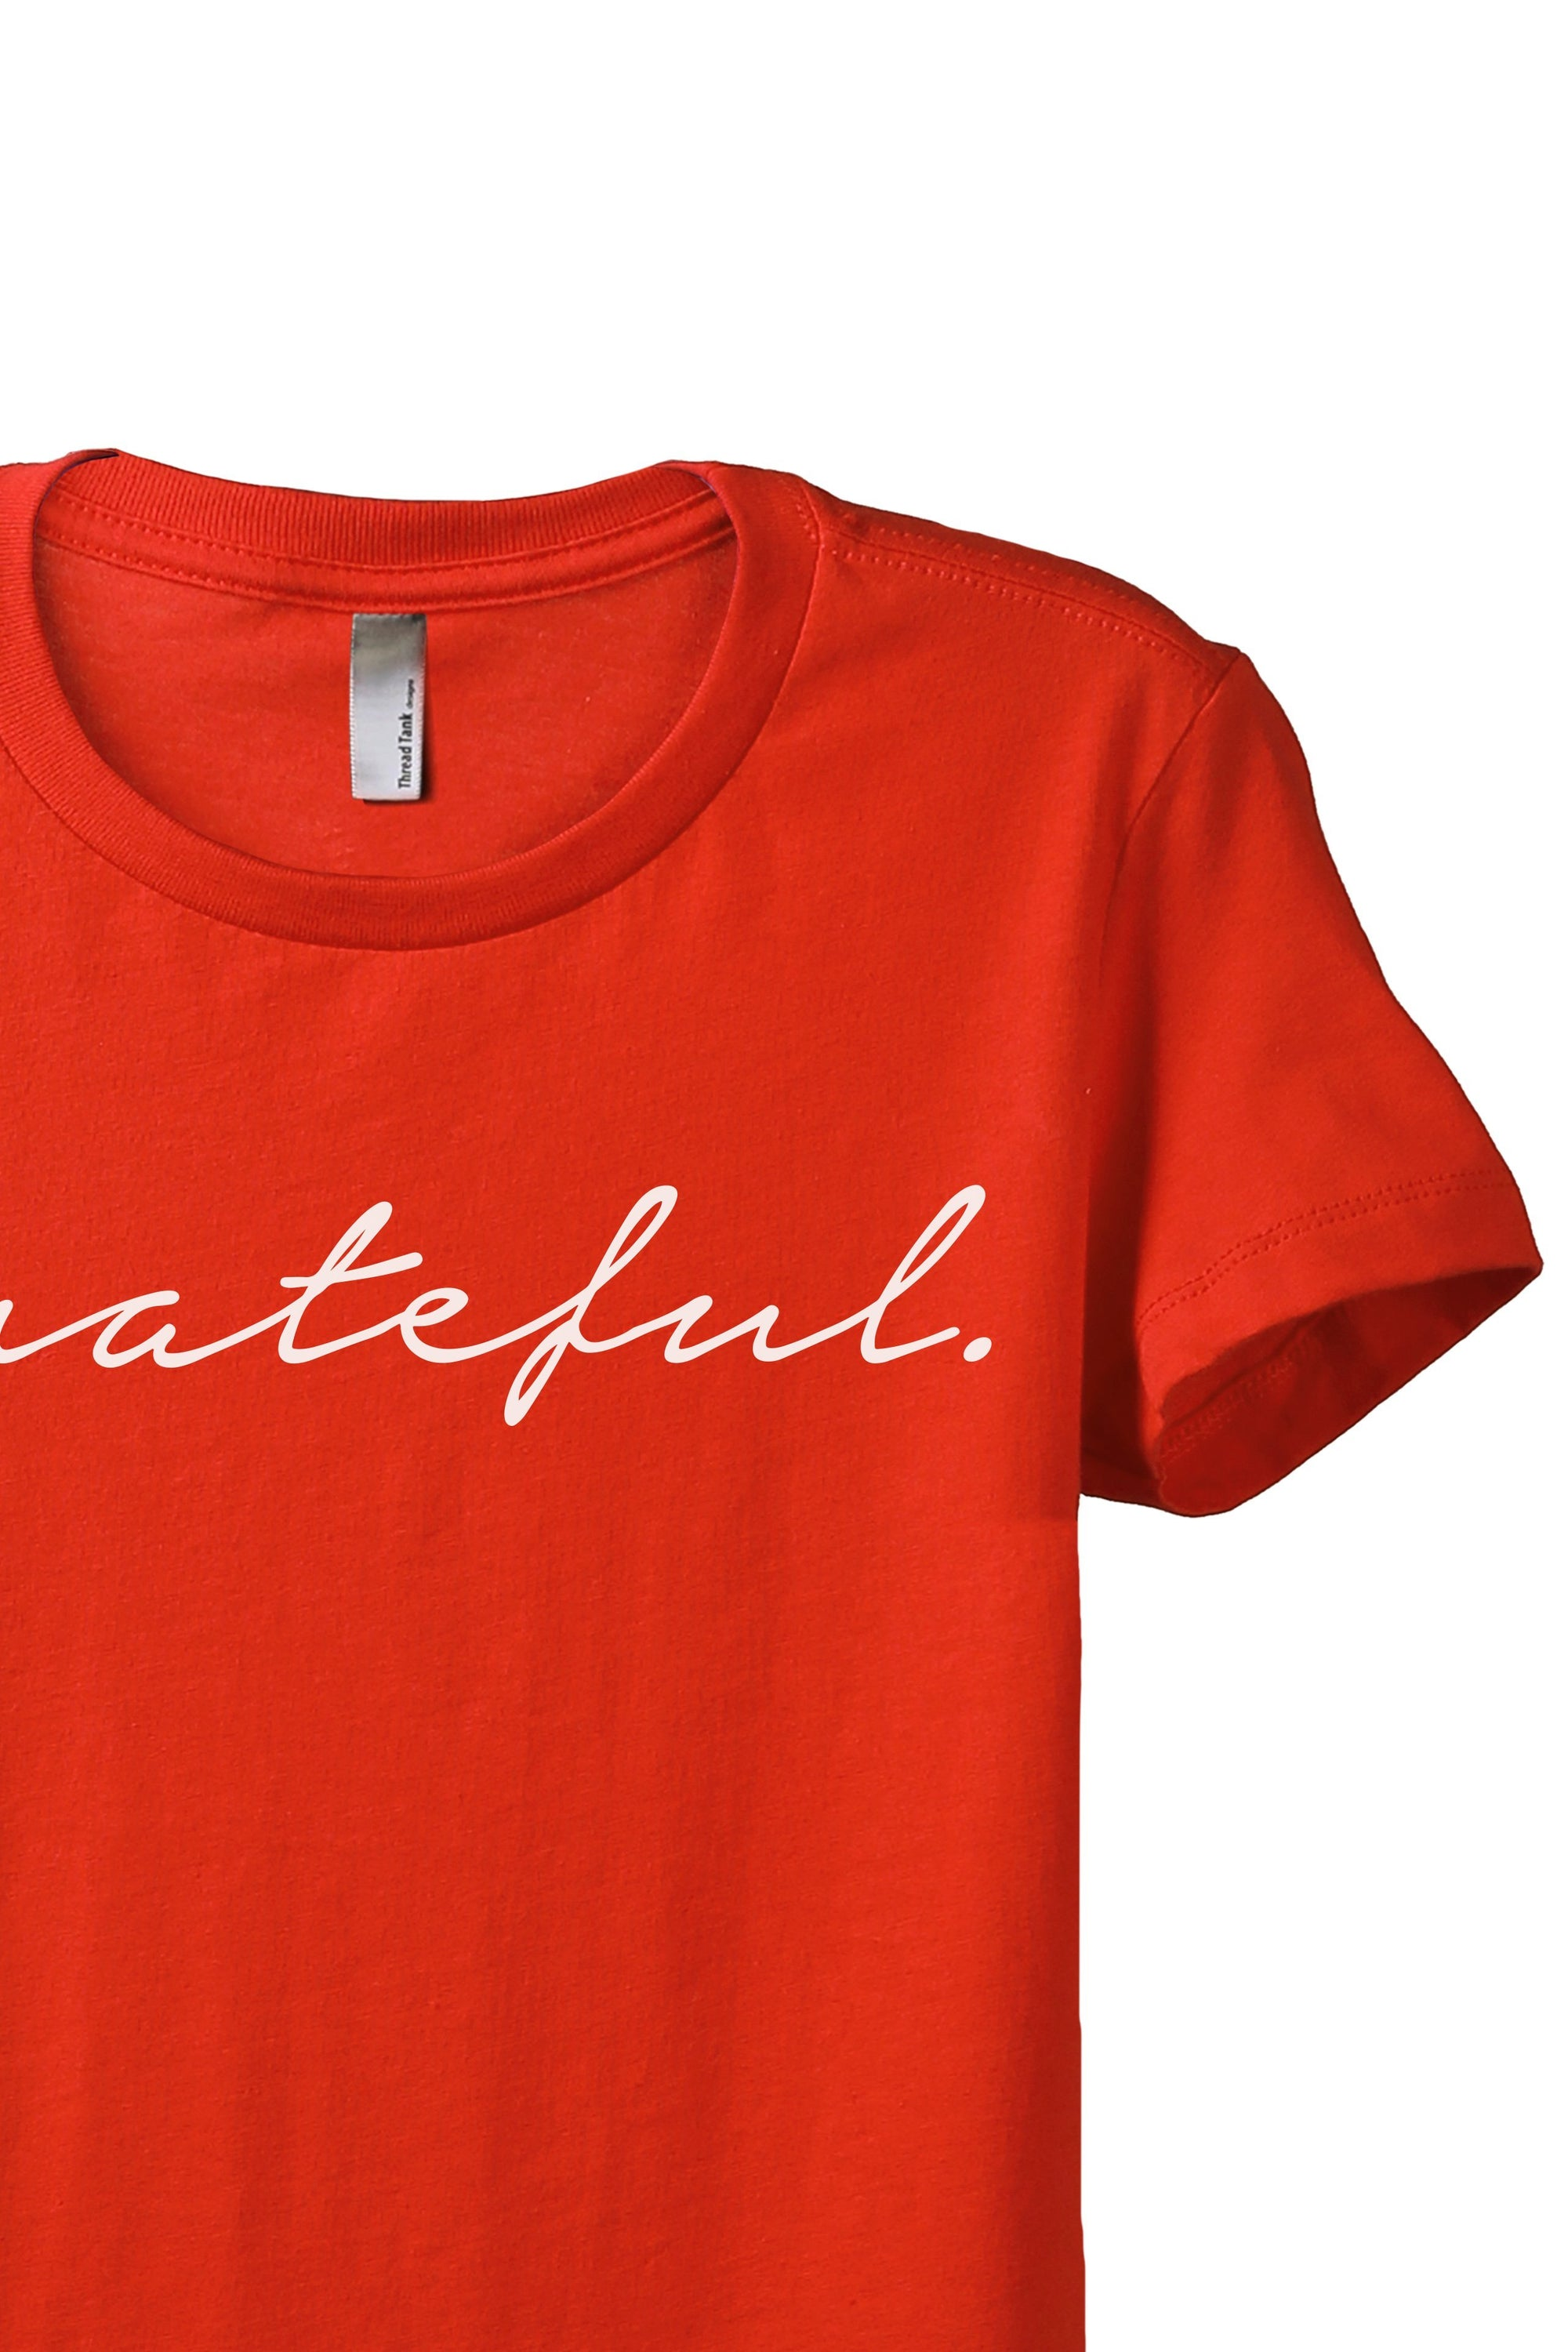 Grateful Women's Relaxed Crewneck T-Shirt Top Tee Poppy